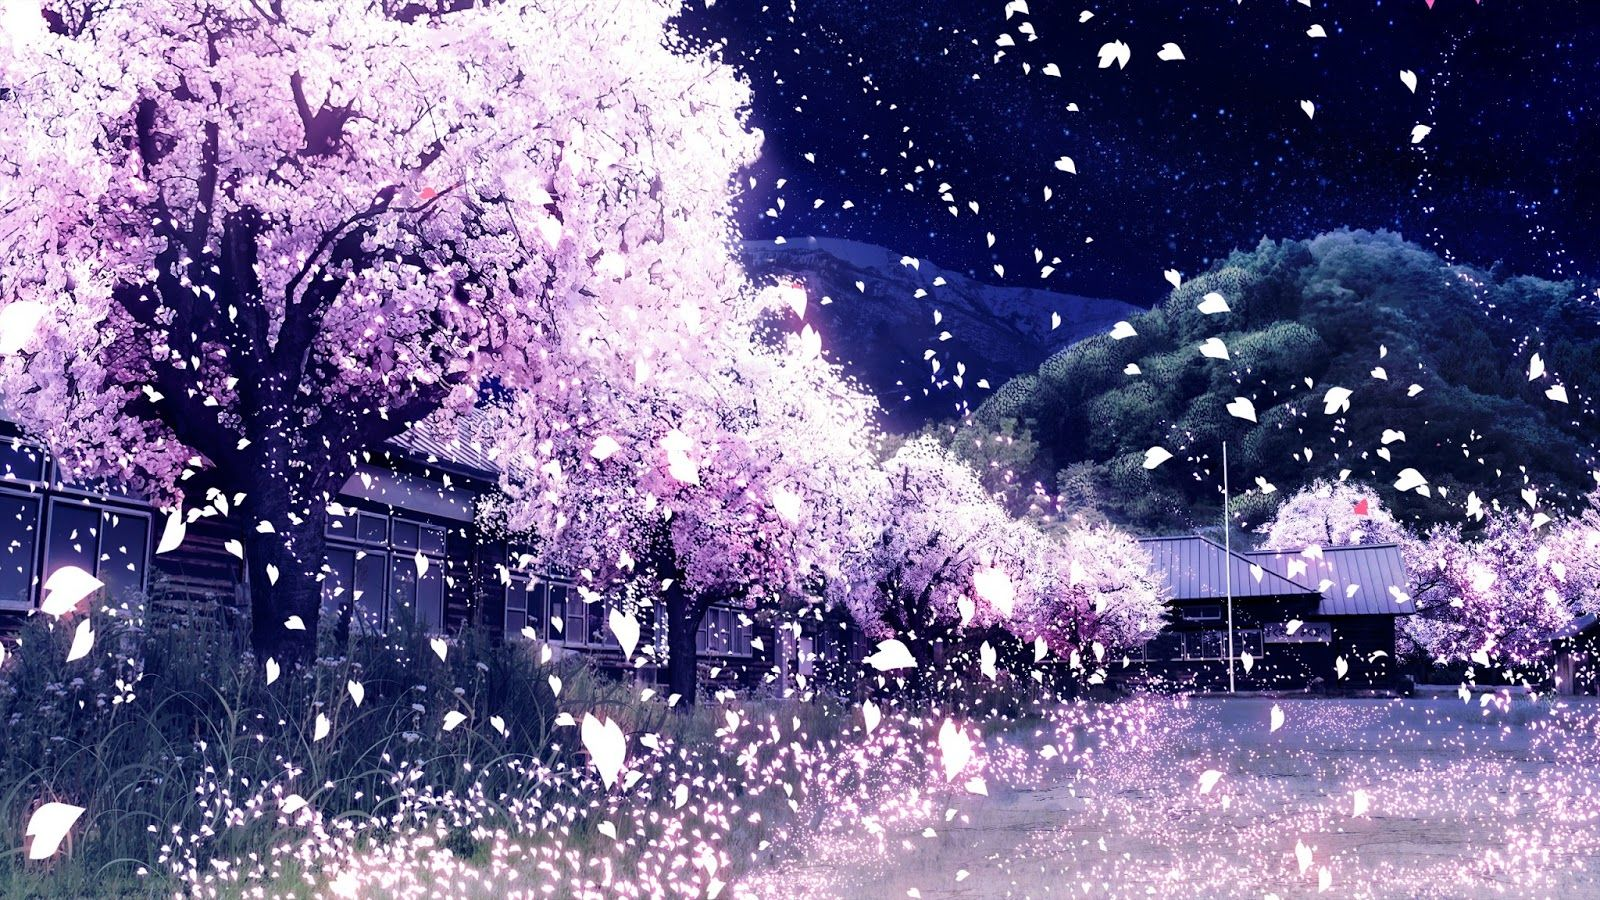 A collection of amazing Anime Landscapes, Sceneries and